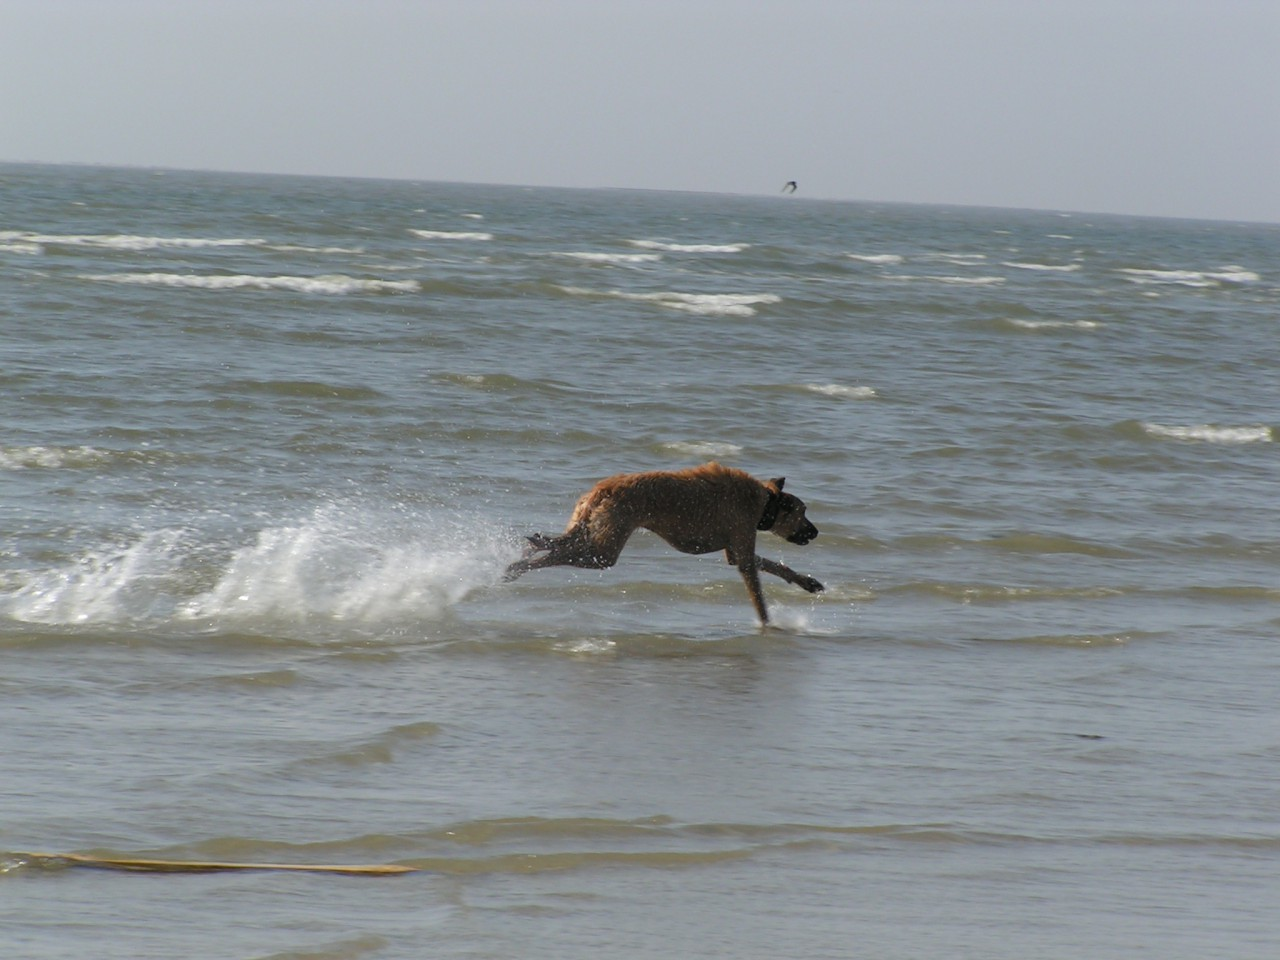 Windhunde Physiotherapie